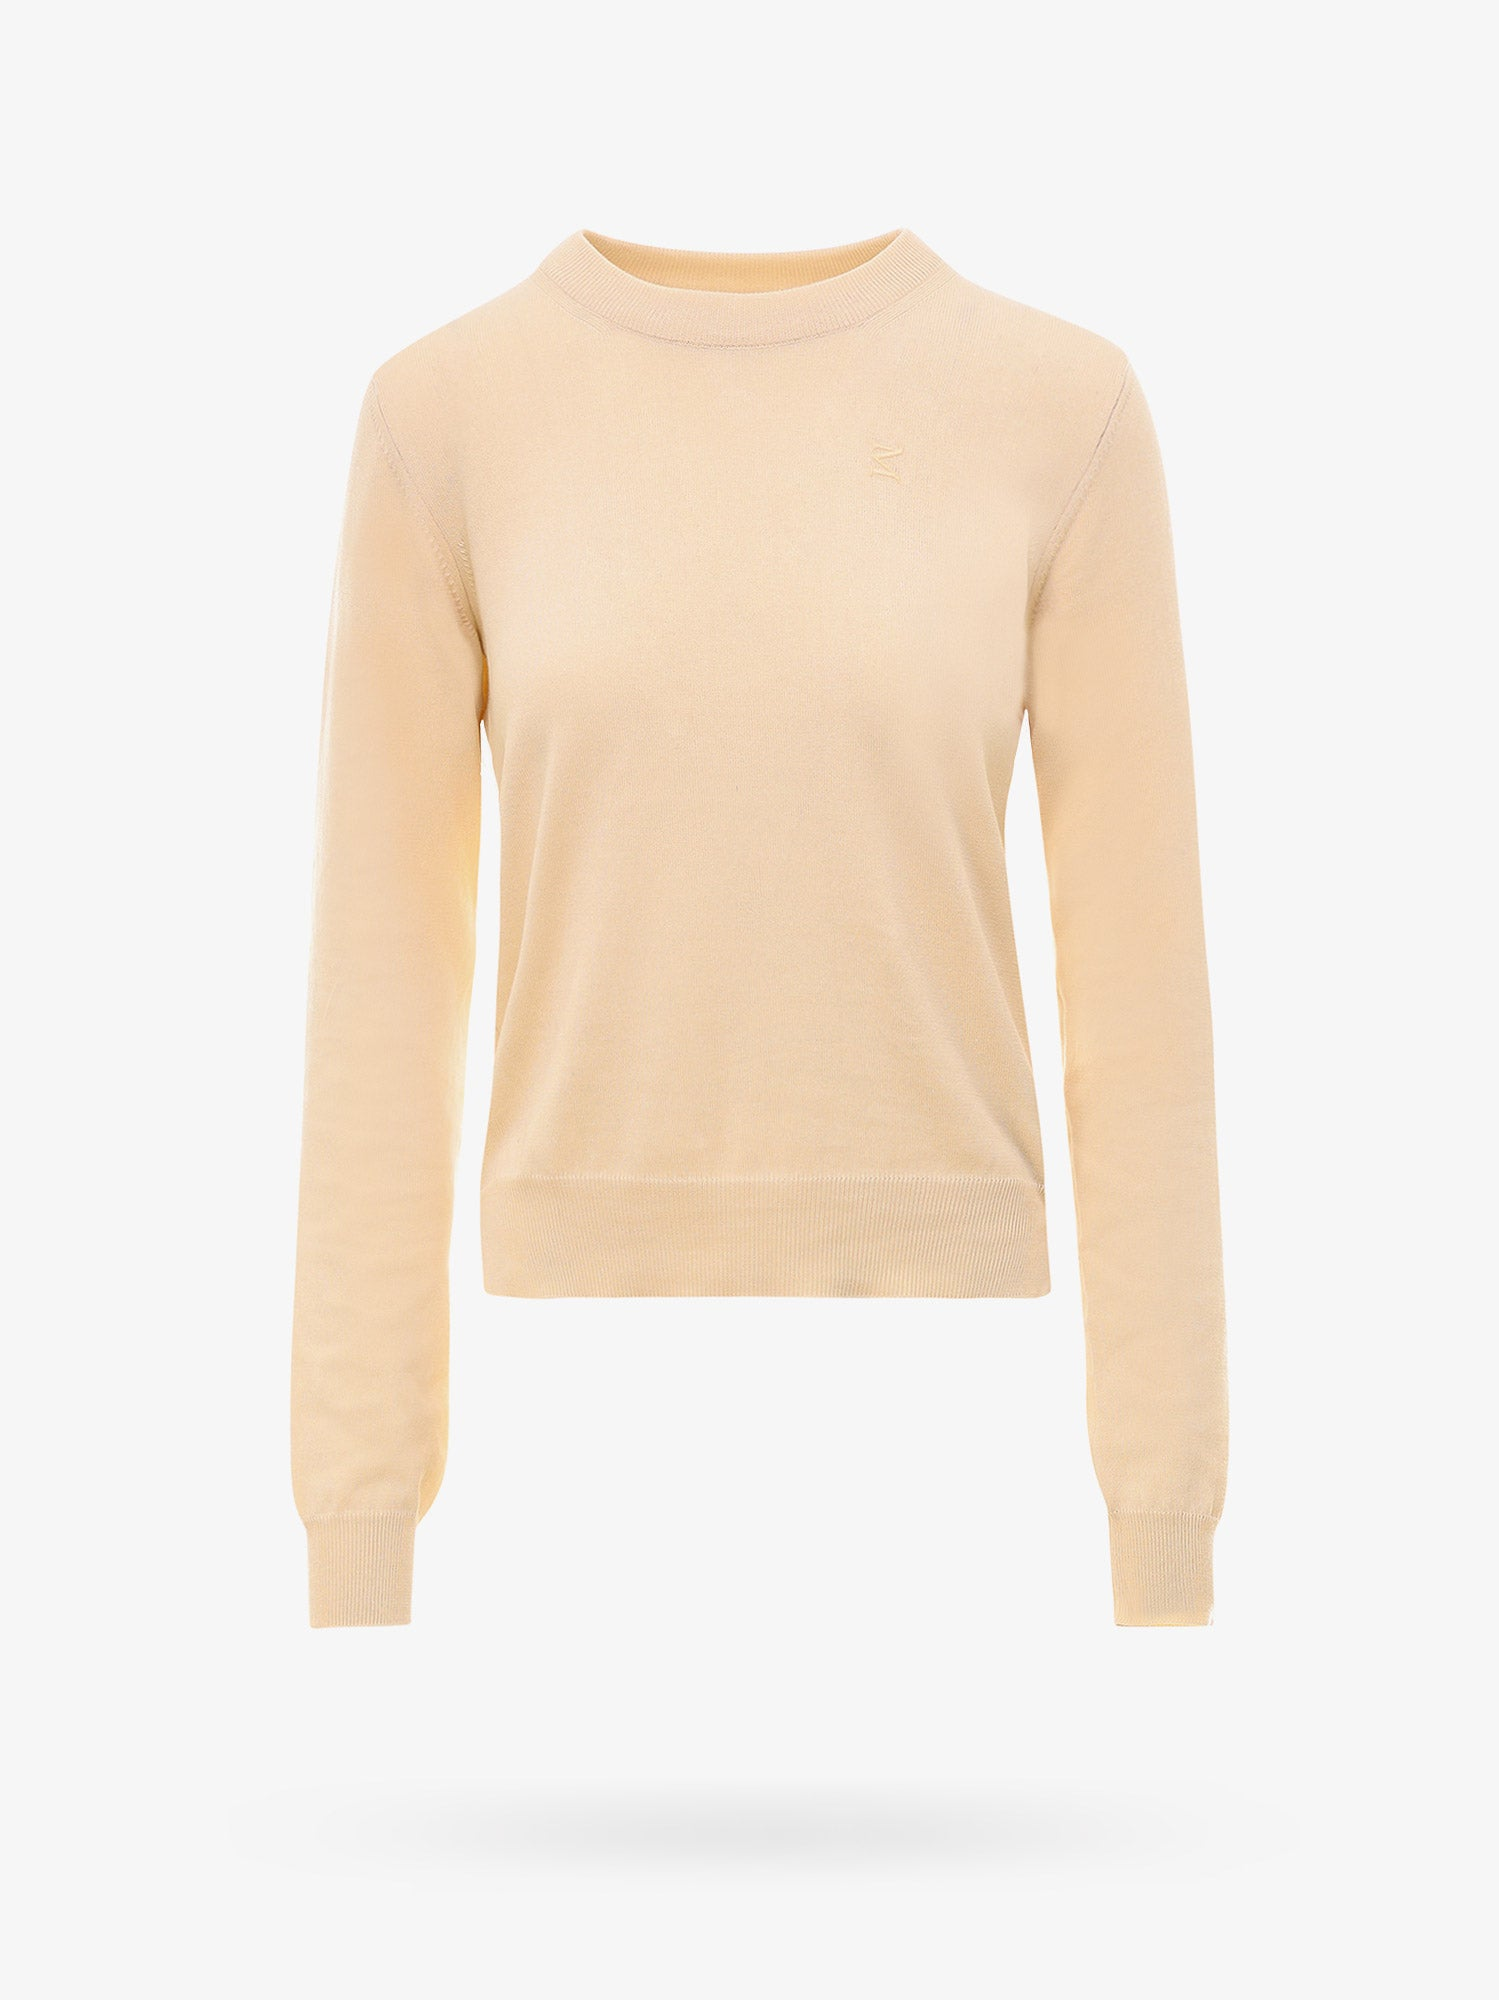 Maison Margiela Knits SWEATER